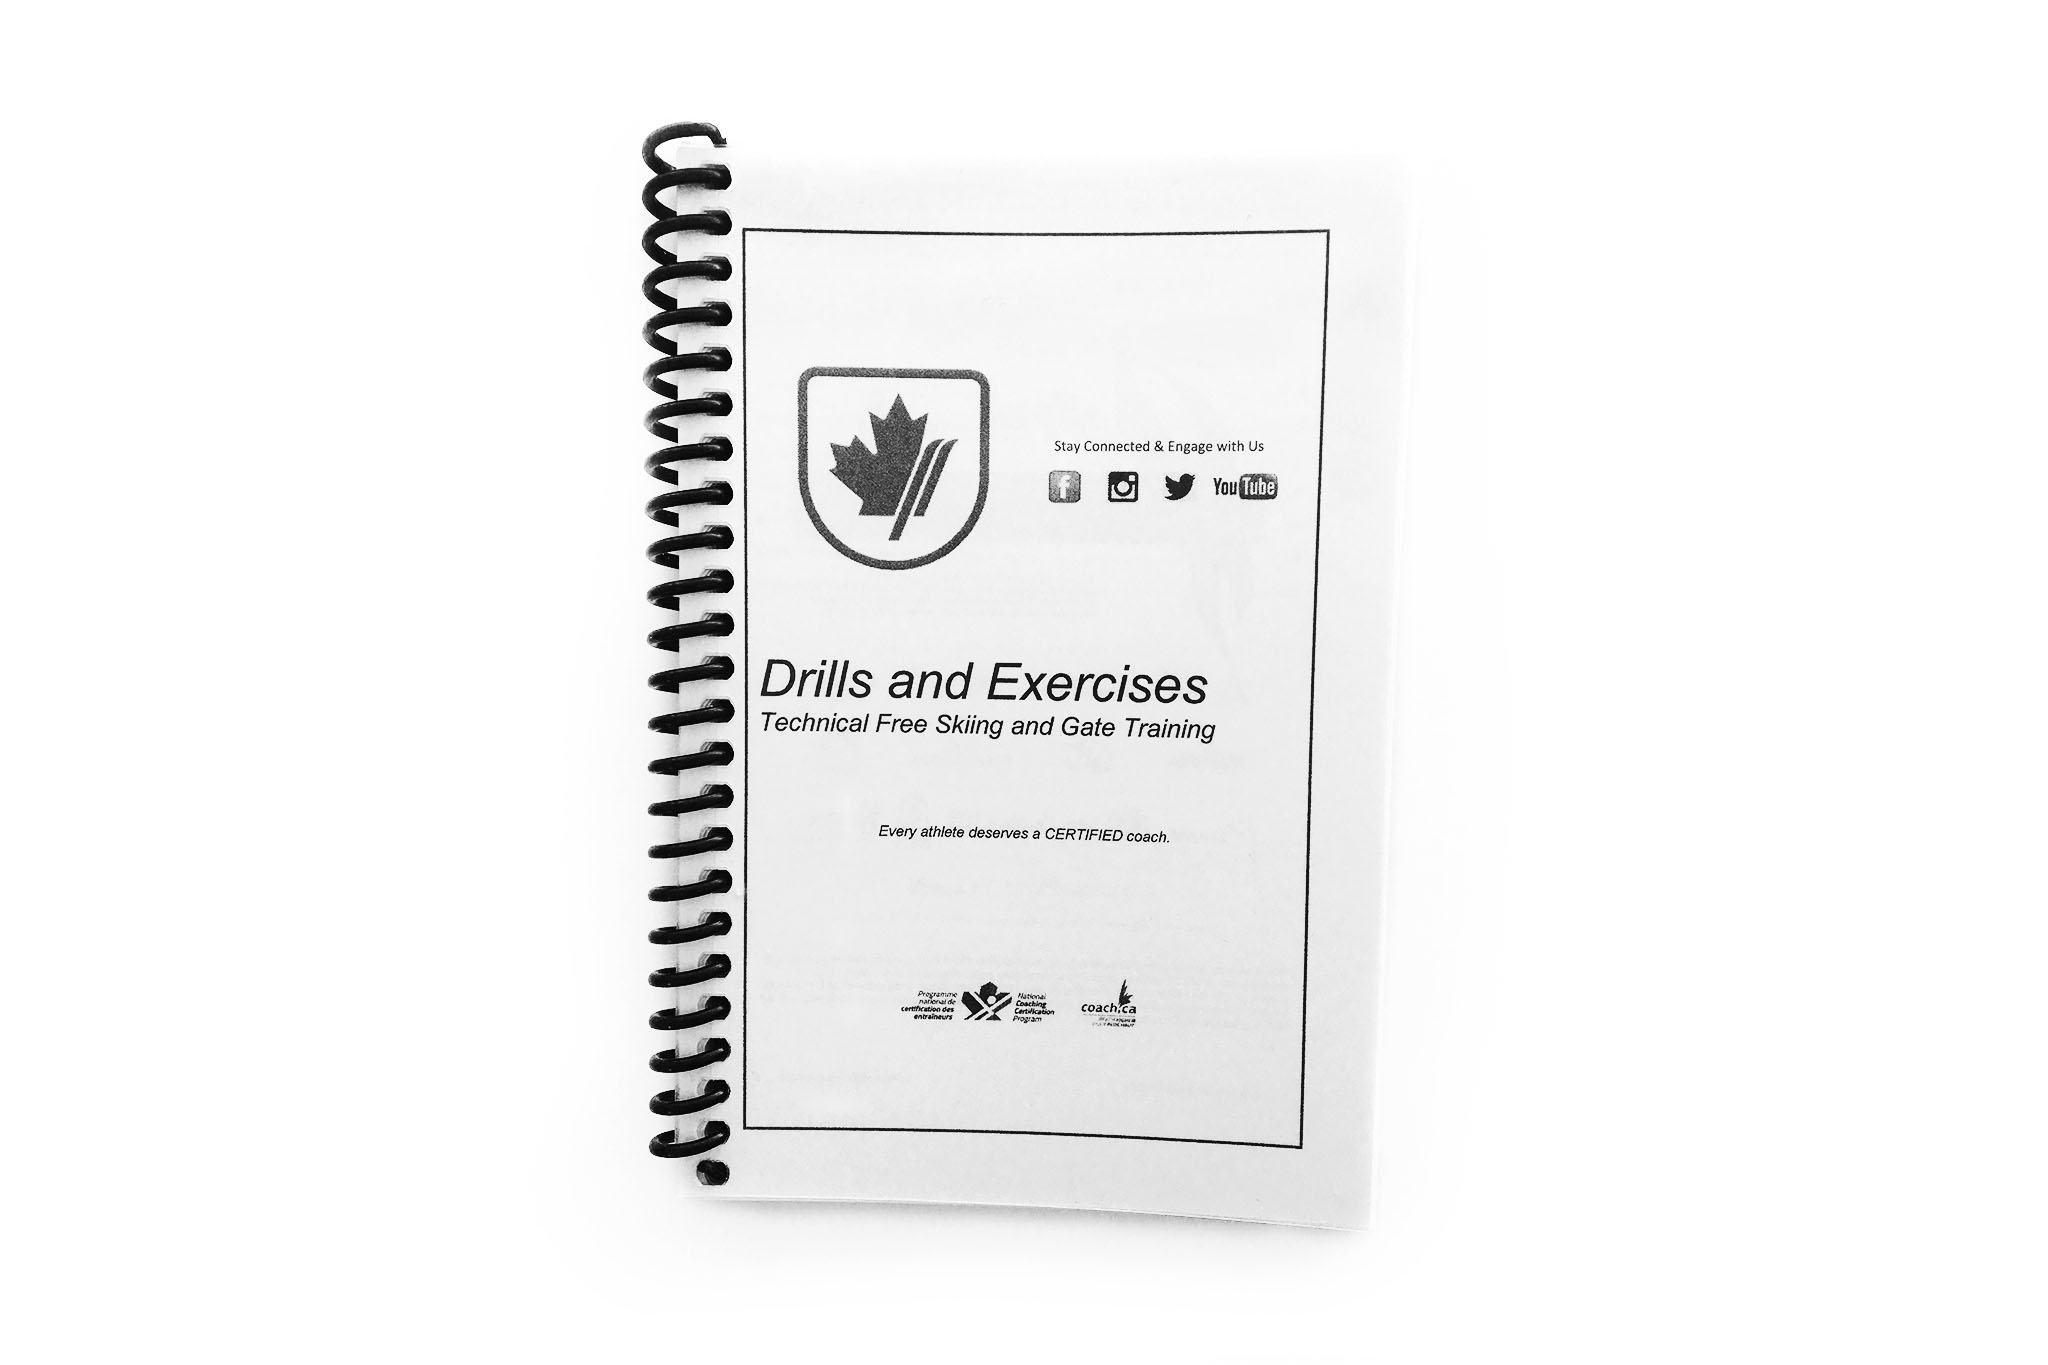 Drills and Exercises Handbook · Manuel d